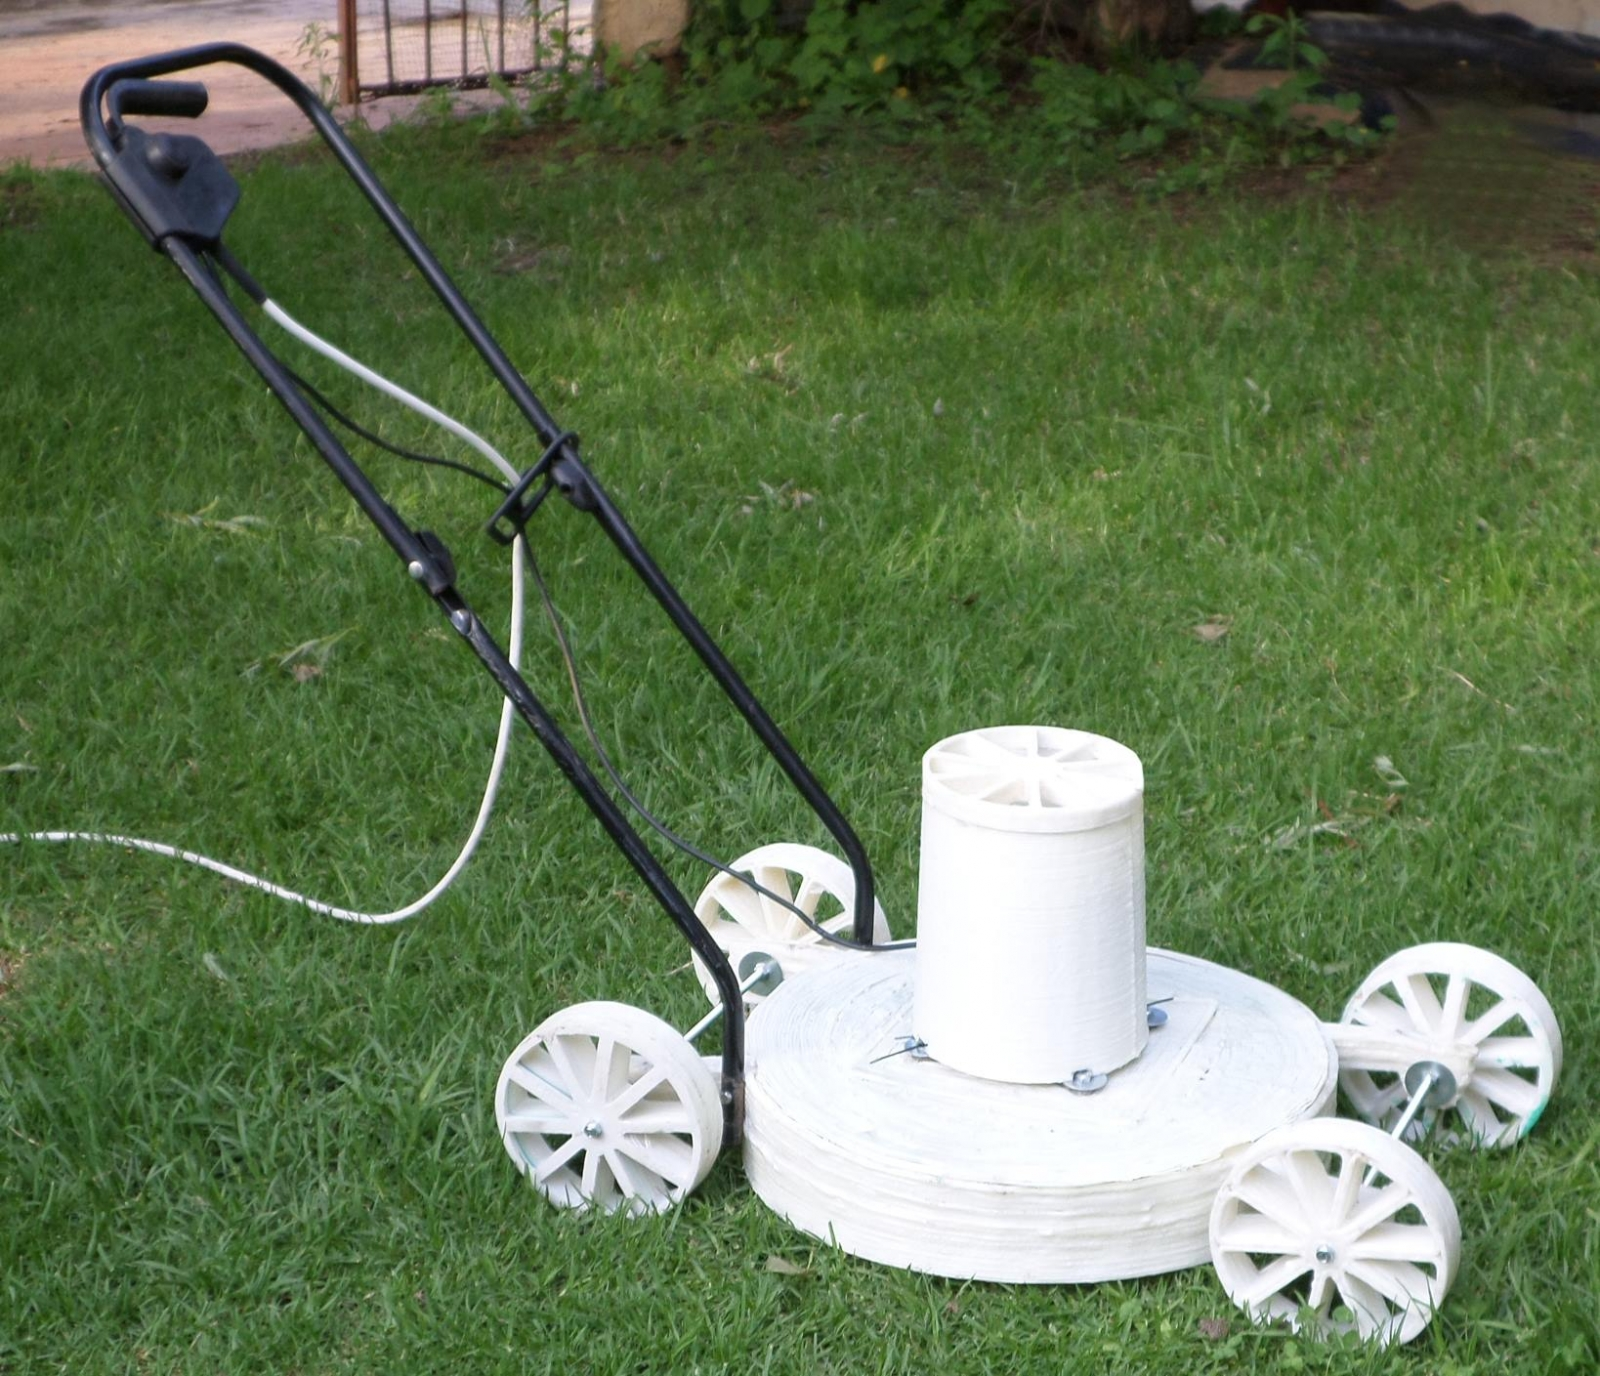 A South African inventor has 3D printed out a working lawn mower in just nine hours